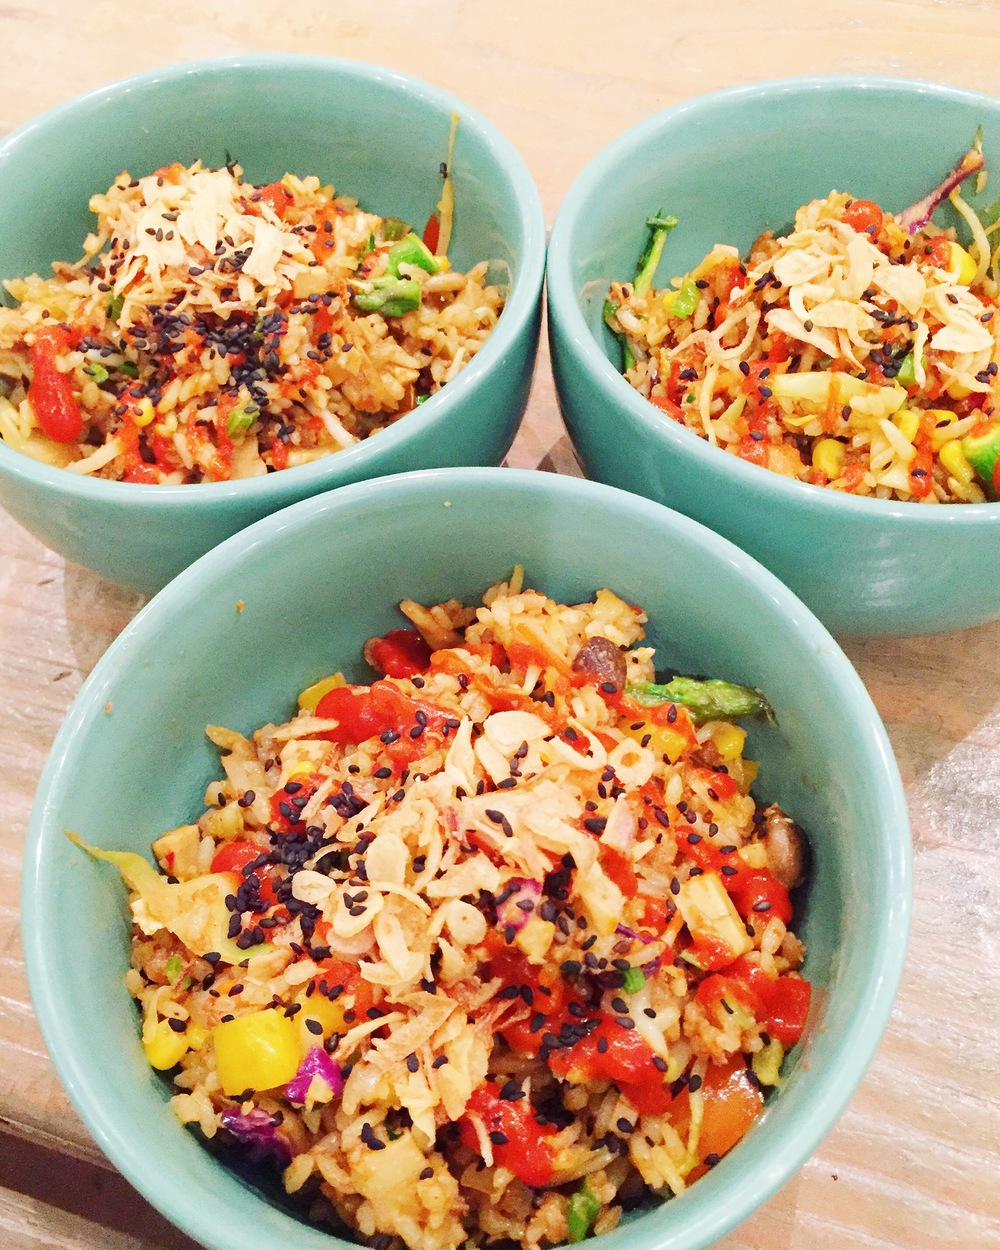 Sriracha Fried Rice by Chef Charles Chen